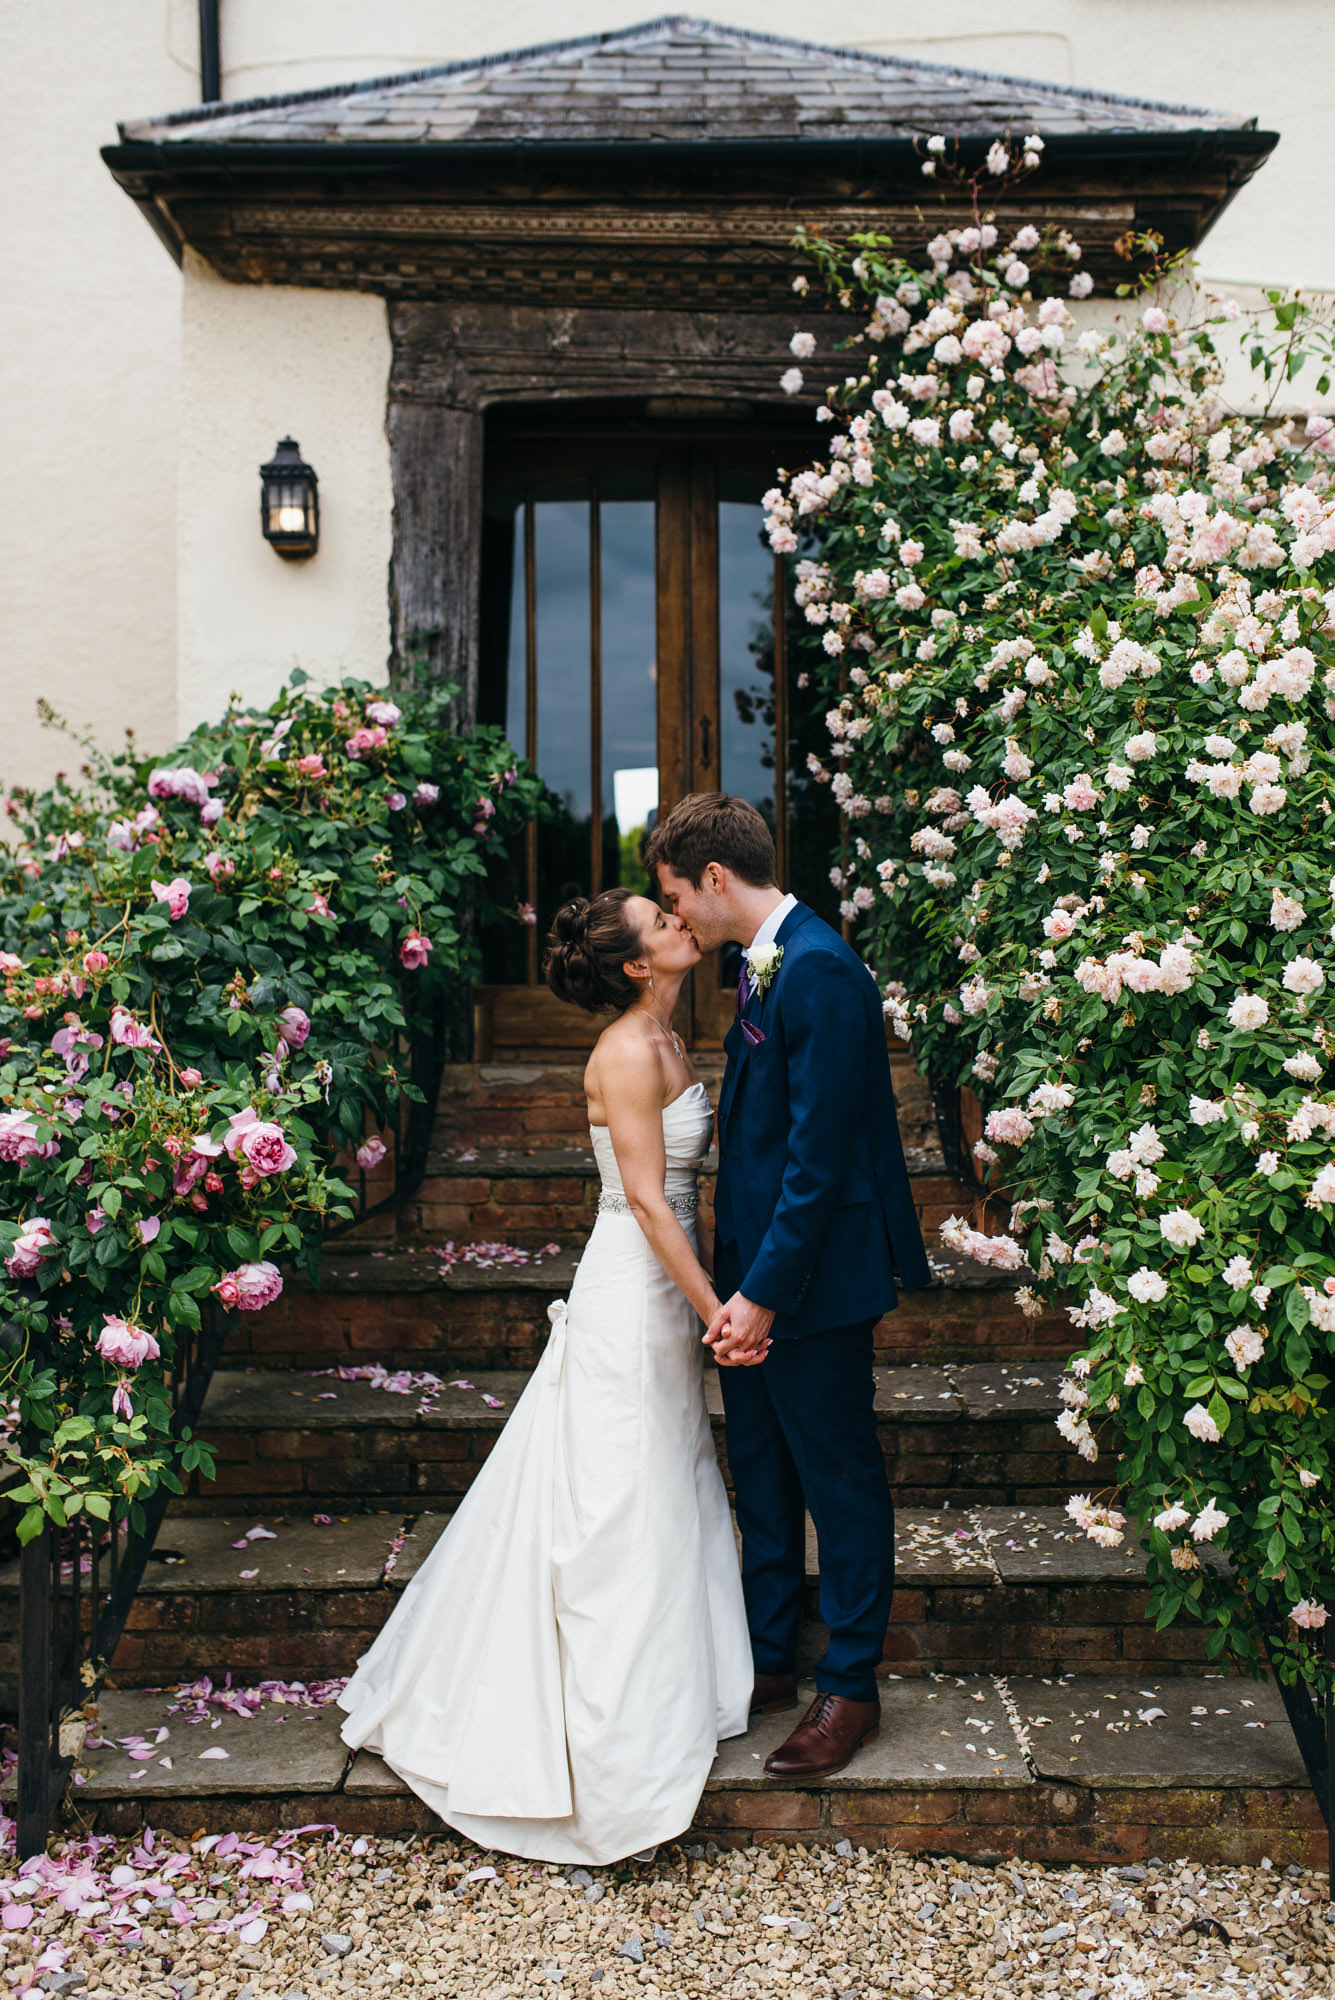 newlyweds Huntstile organic farm wedding